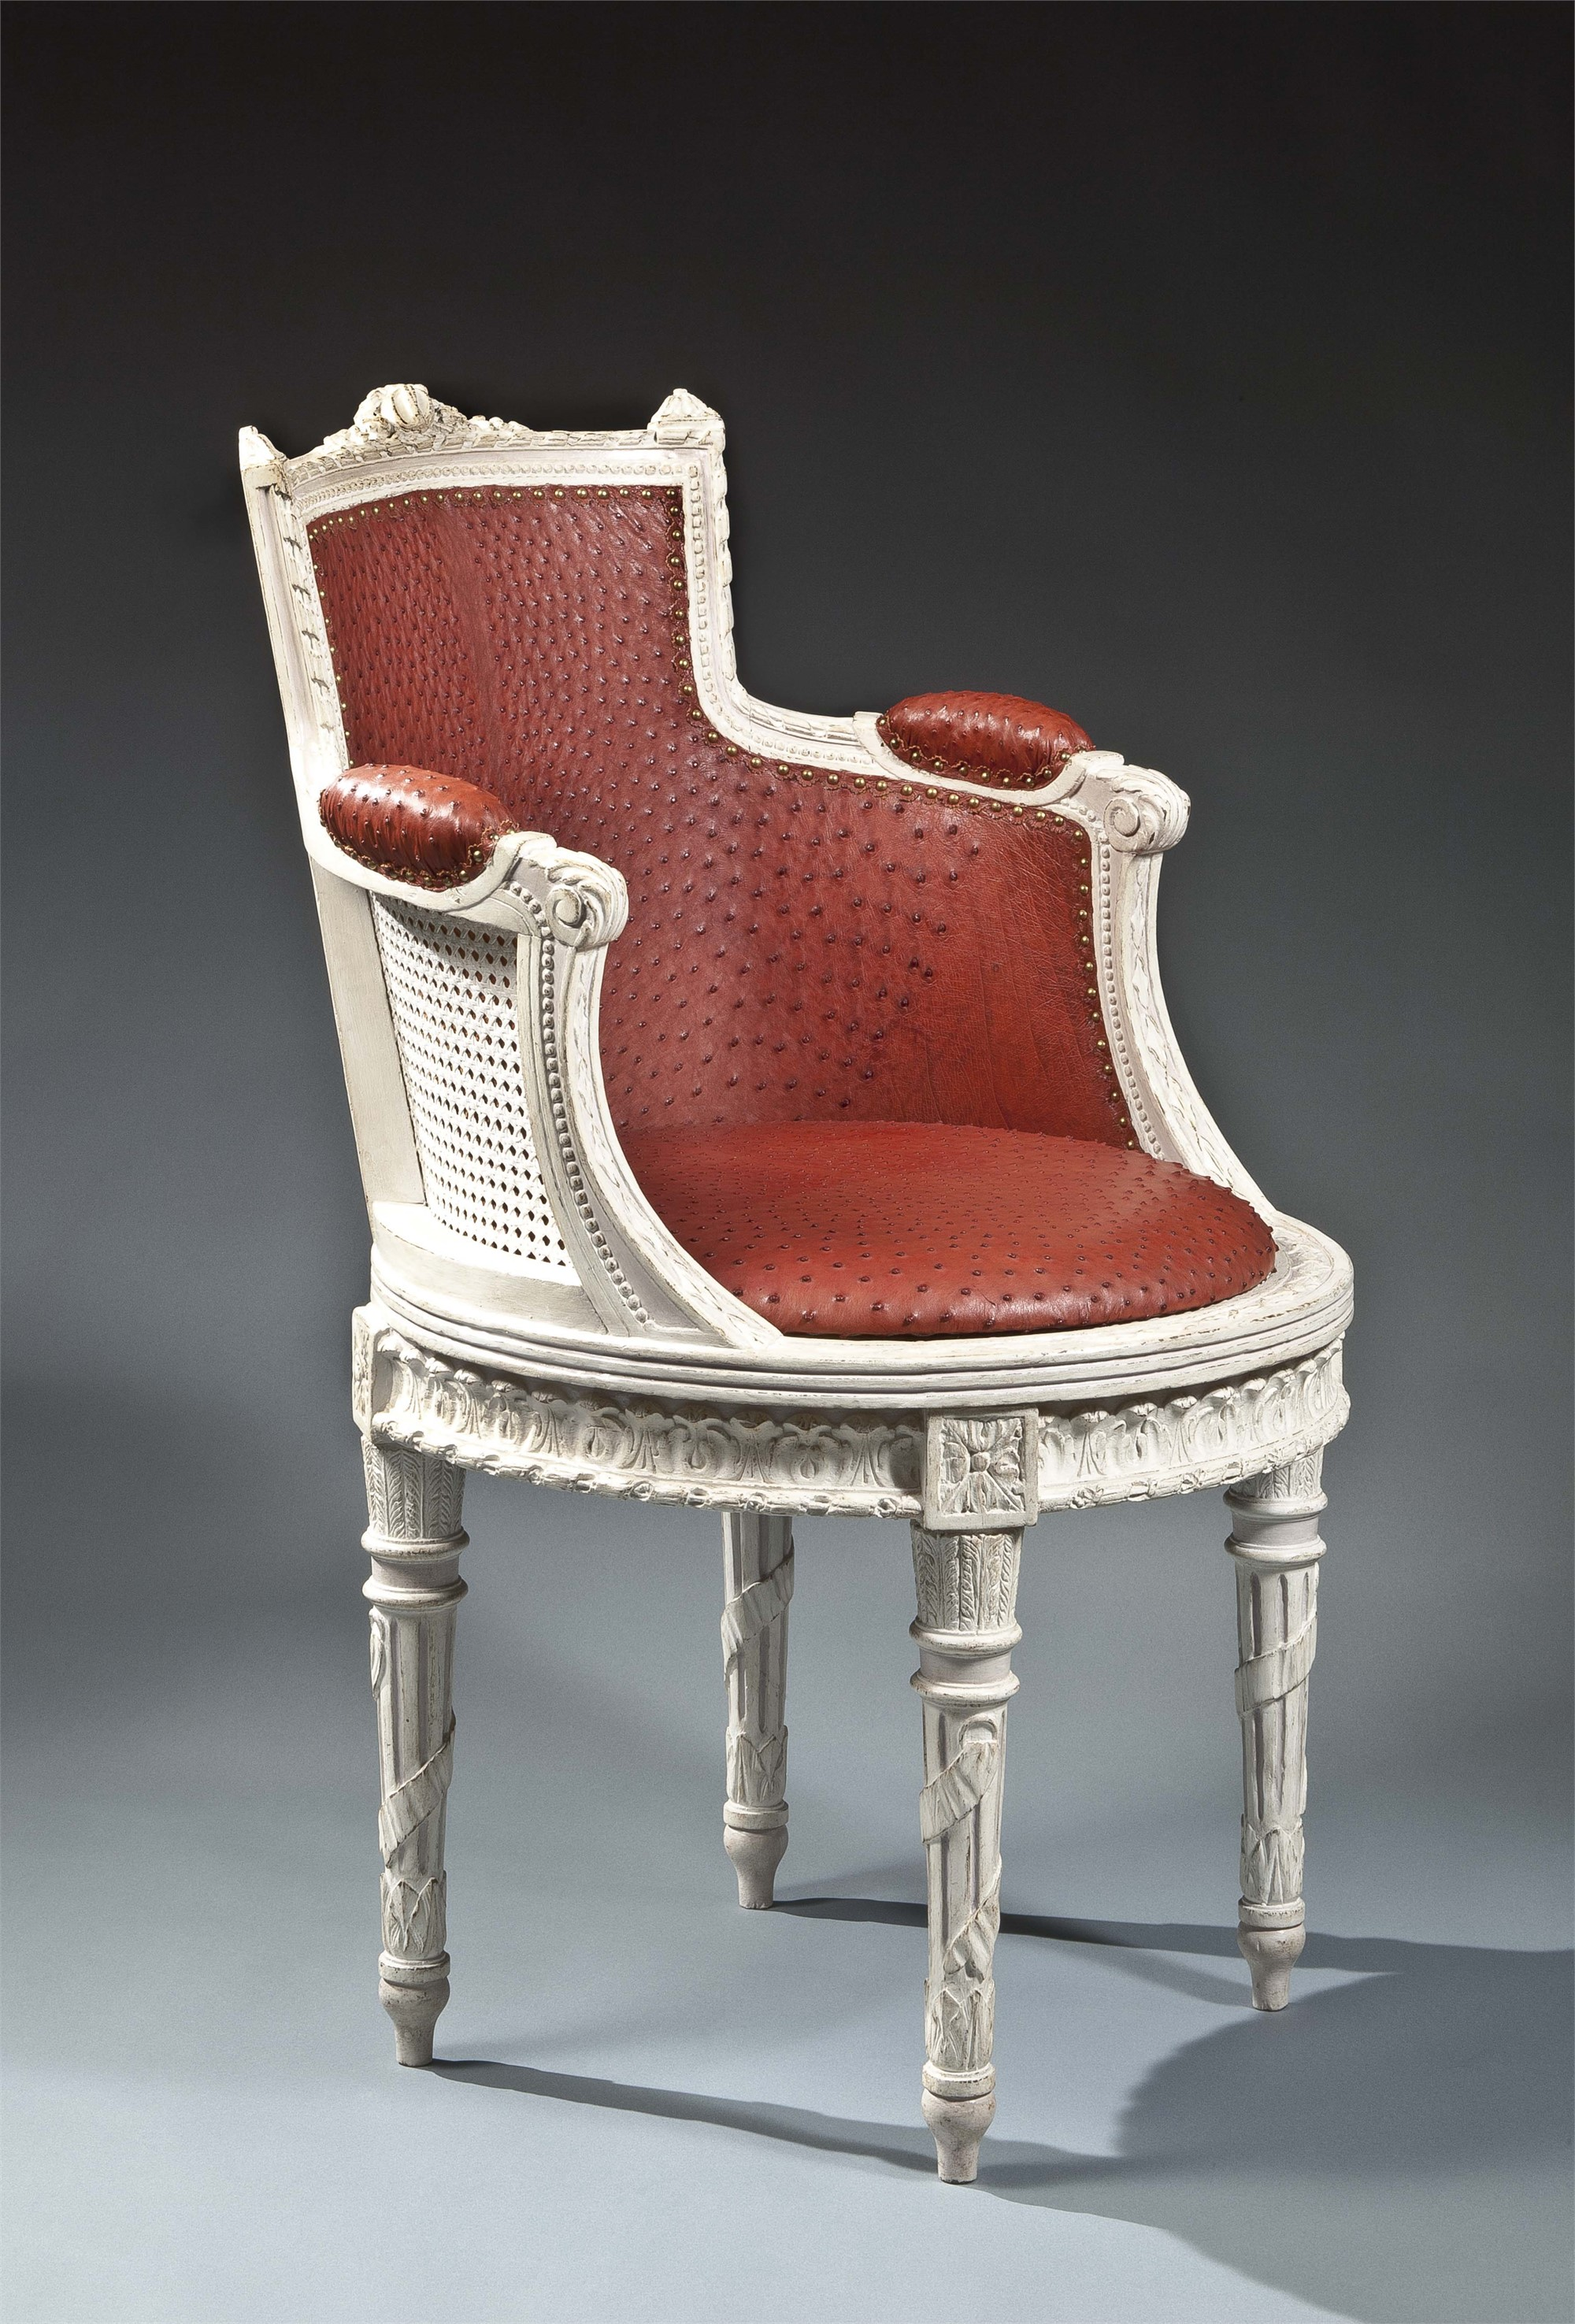 LOUIS XVI FAUTEUIL DE BUREAU (SWIVEL DESK CHAIR)